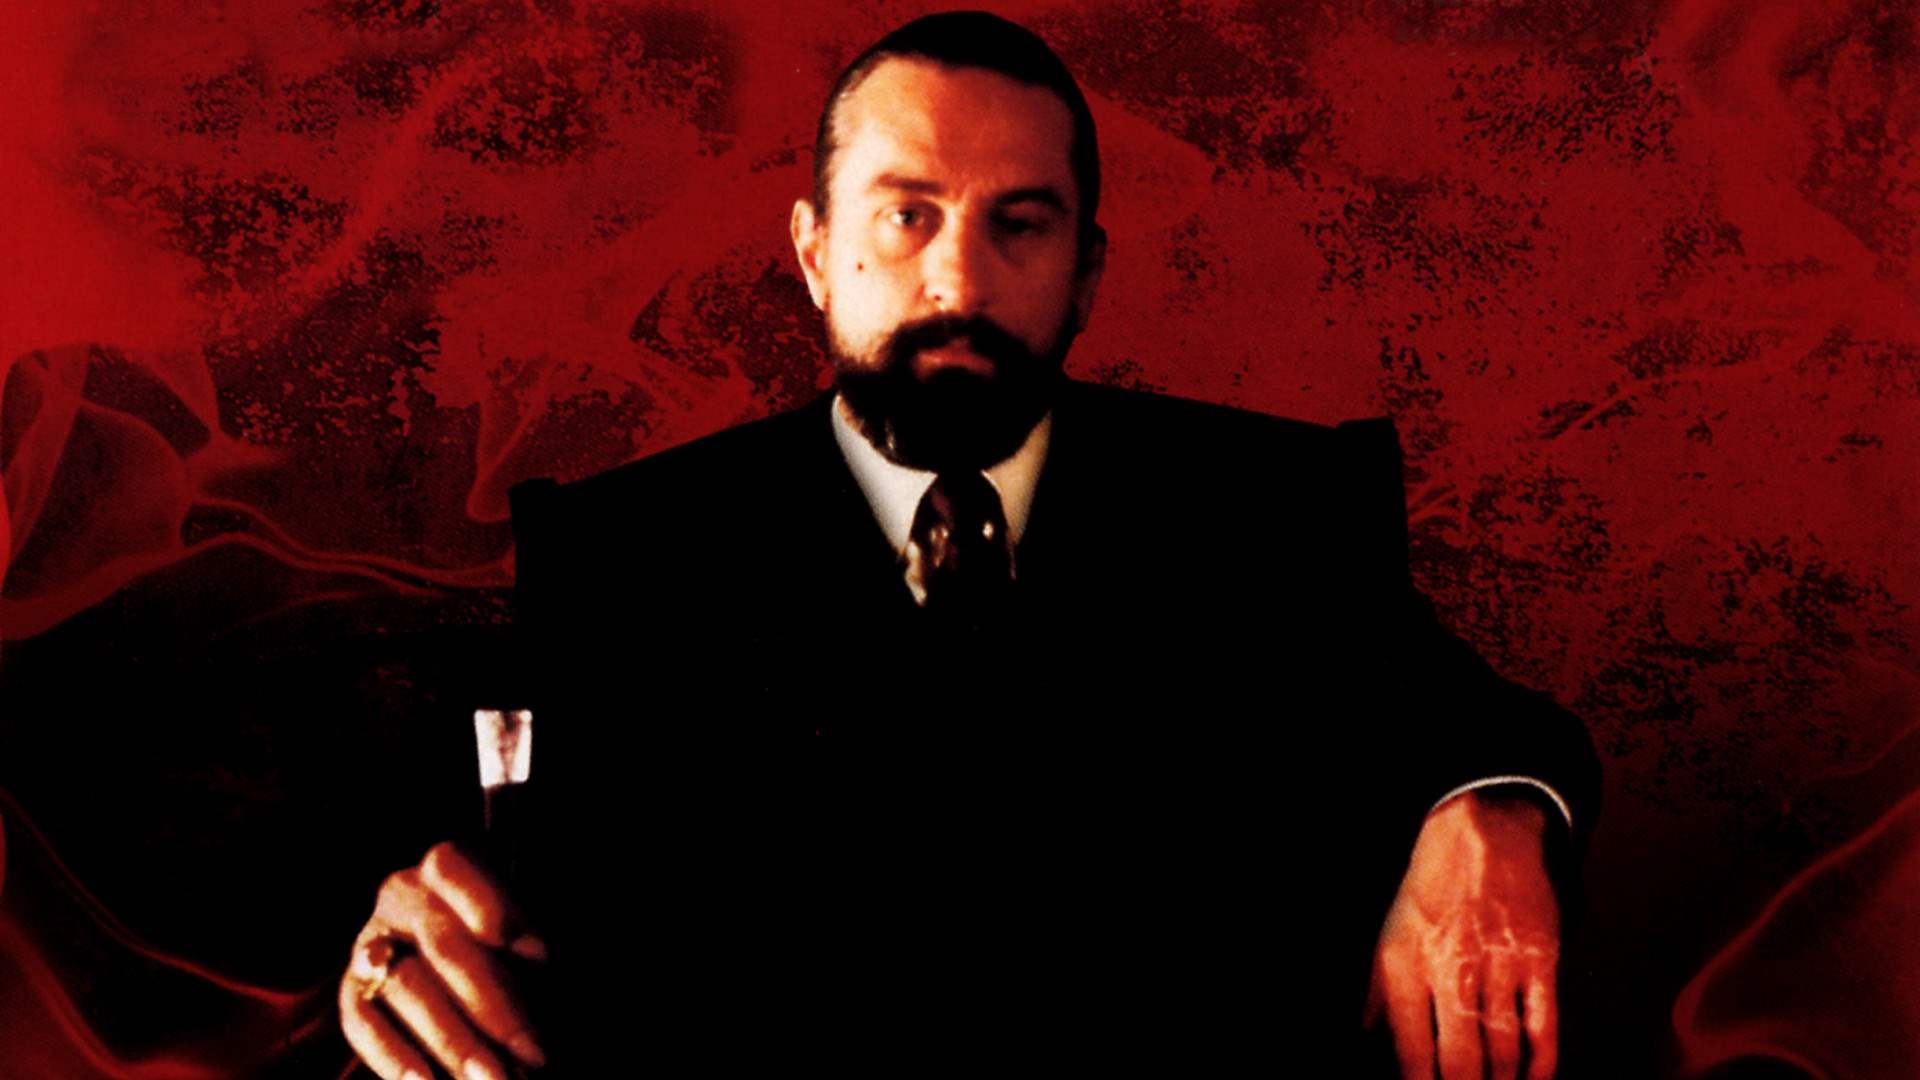 De Niro in Angel Heart